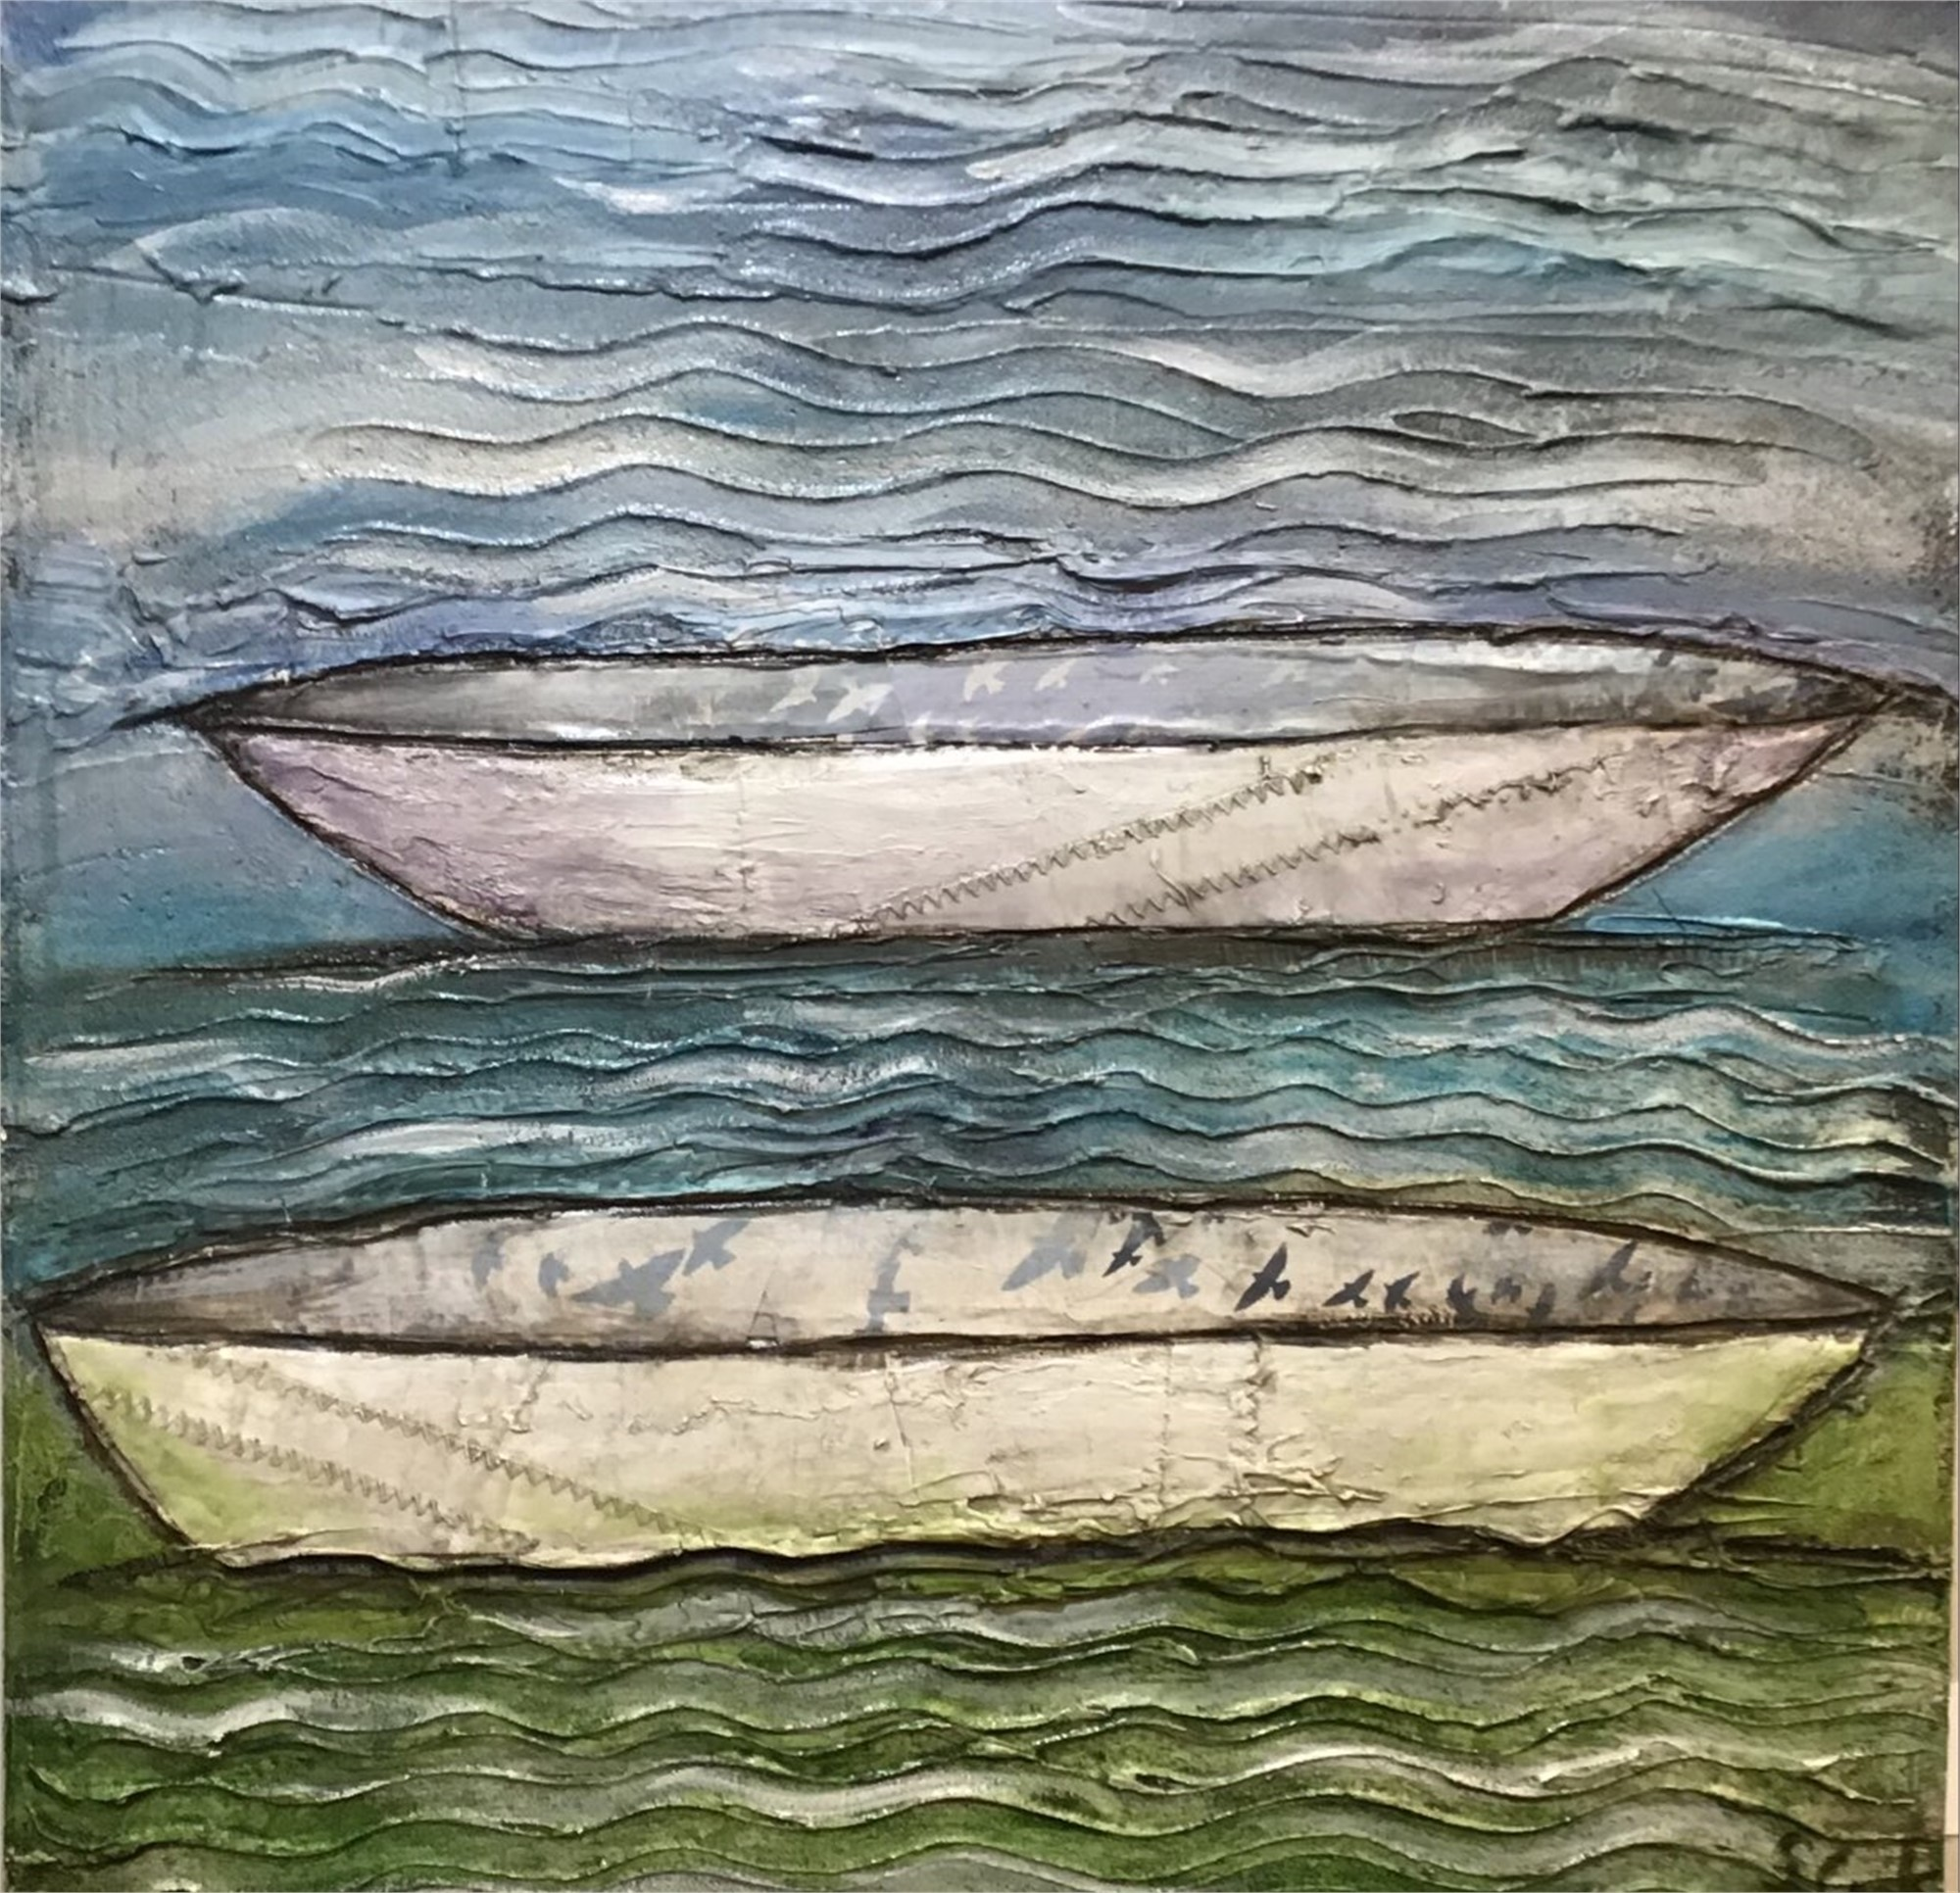 Water Dreams by Sherry Cook